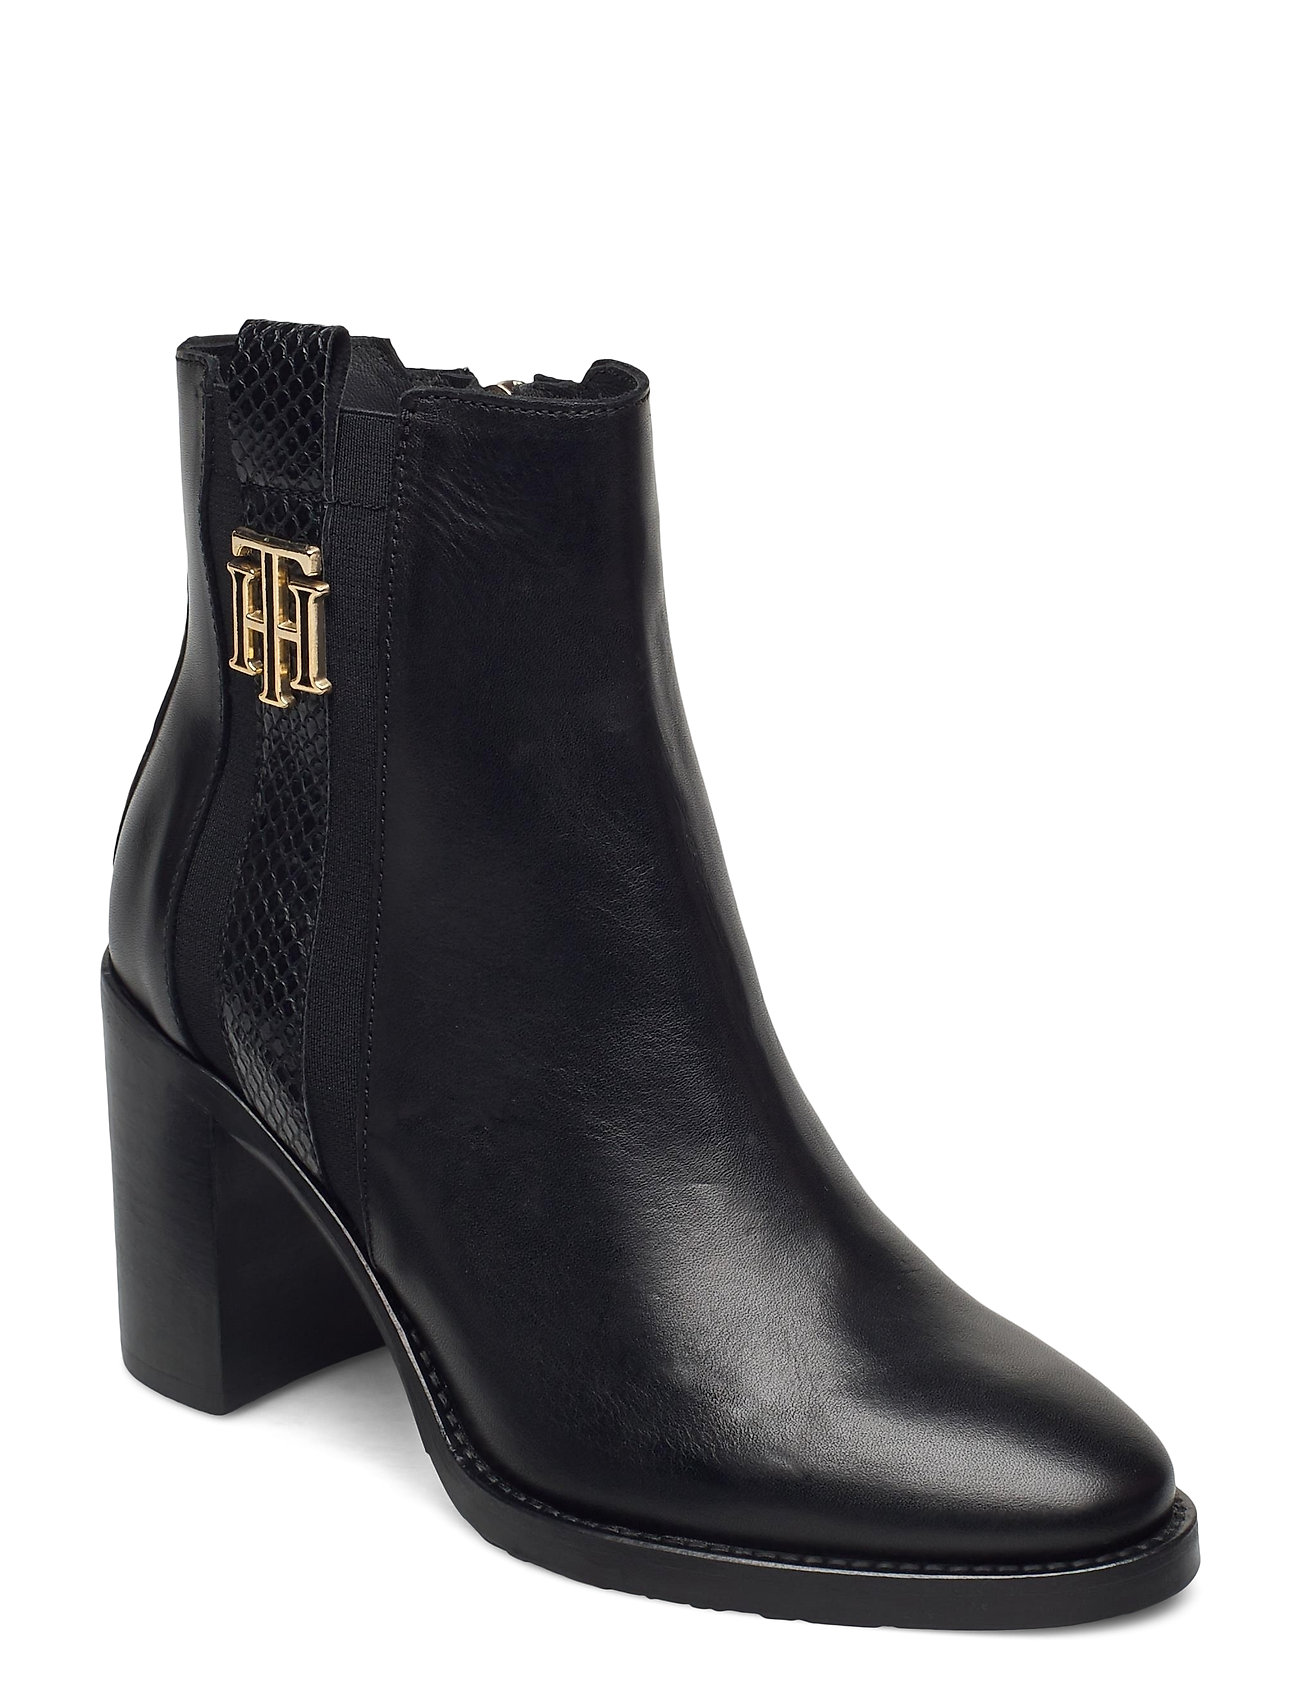 Image of Th Interlock High Heel Boot Shoes Boots Ankle Boots Ankle Boot - Heel Sort Tommy Hilfiger (3463420125)